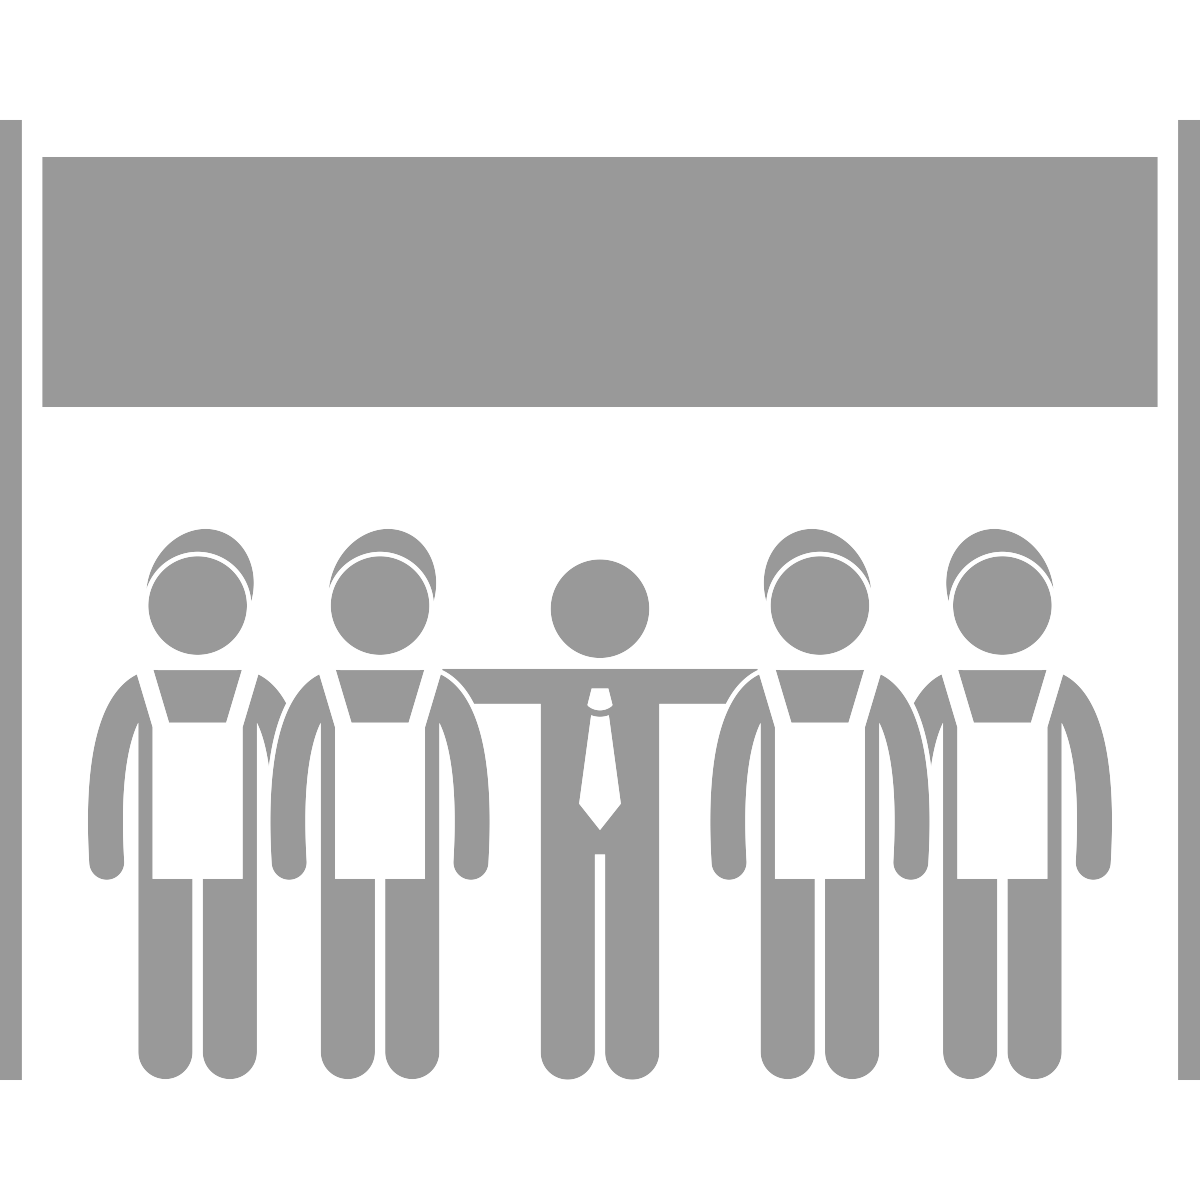 Teamwork clipart hospitality. Staffing services outsourcing l